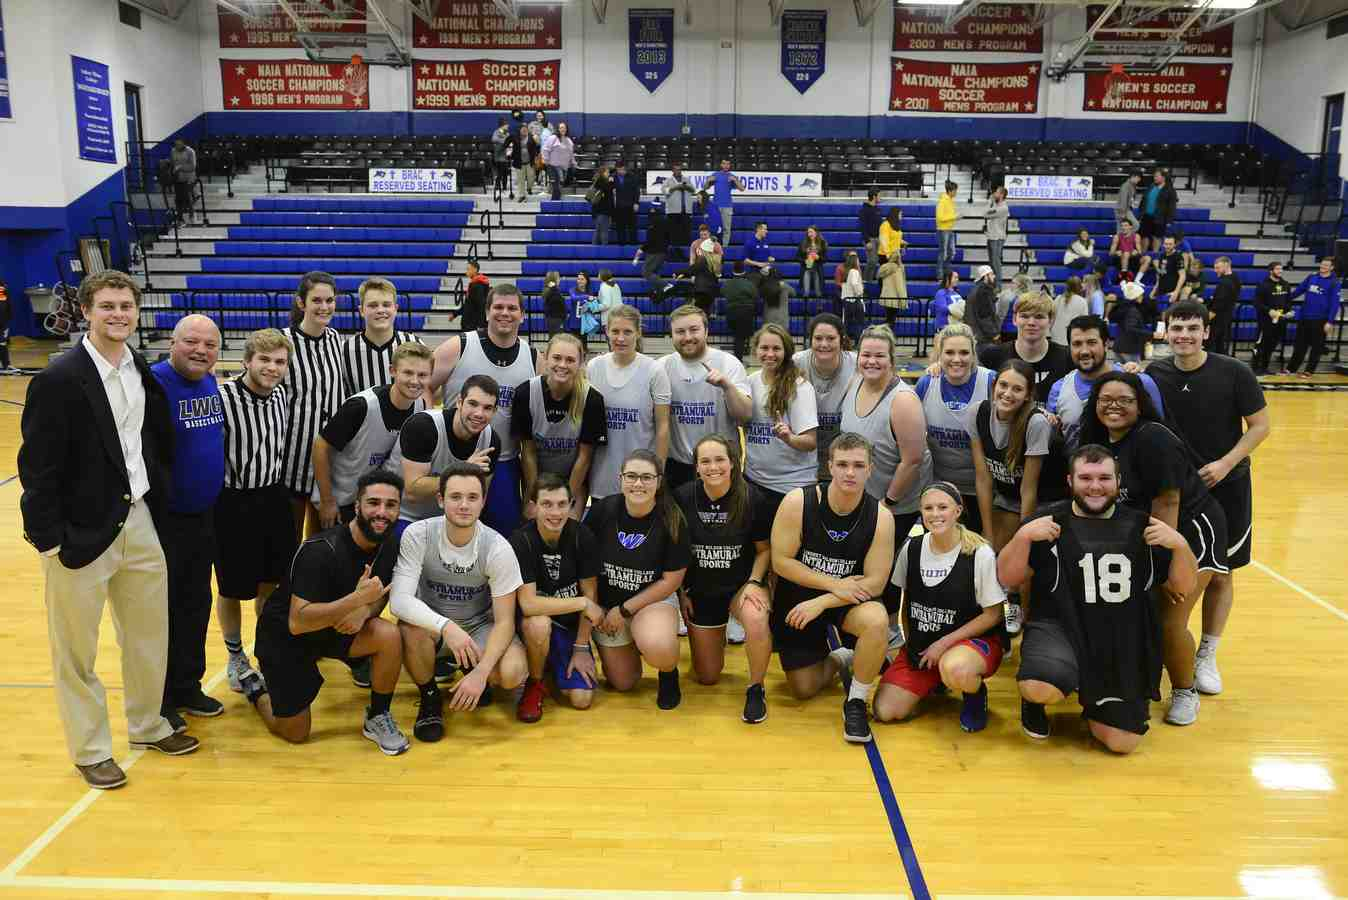 Third-Annual Student-Faculty Game Brings LWC Community Together